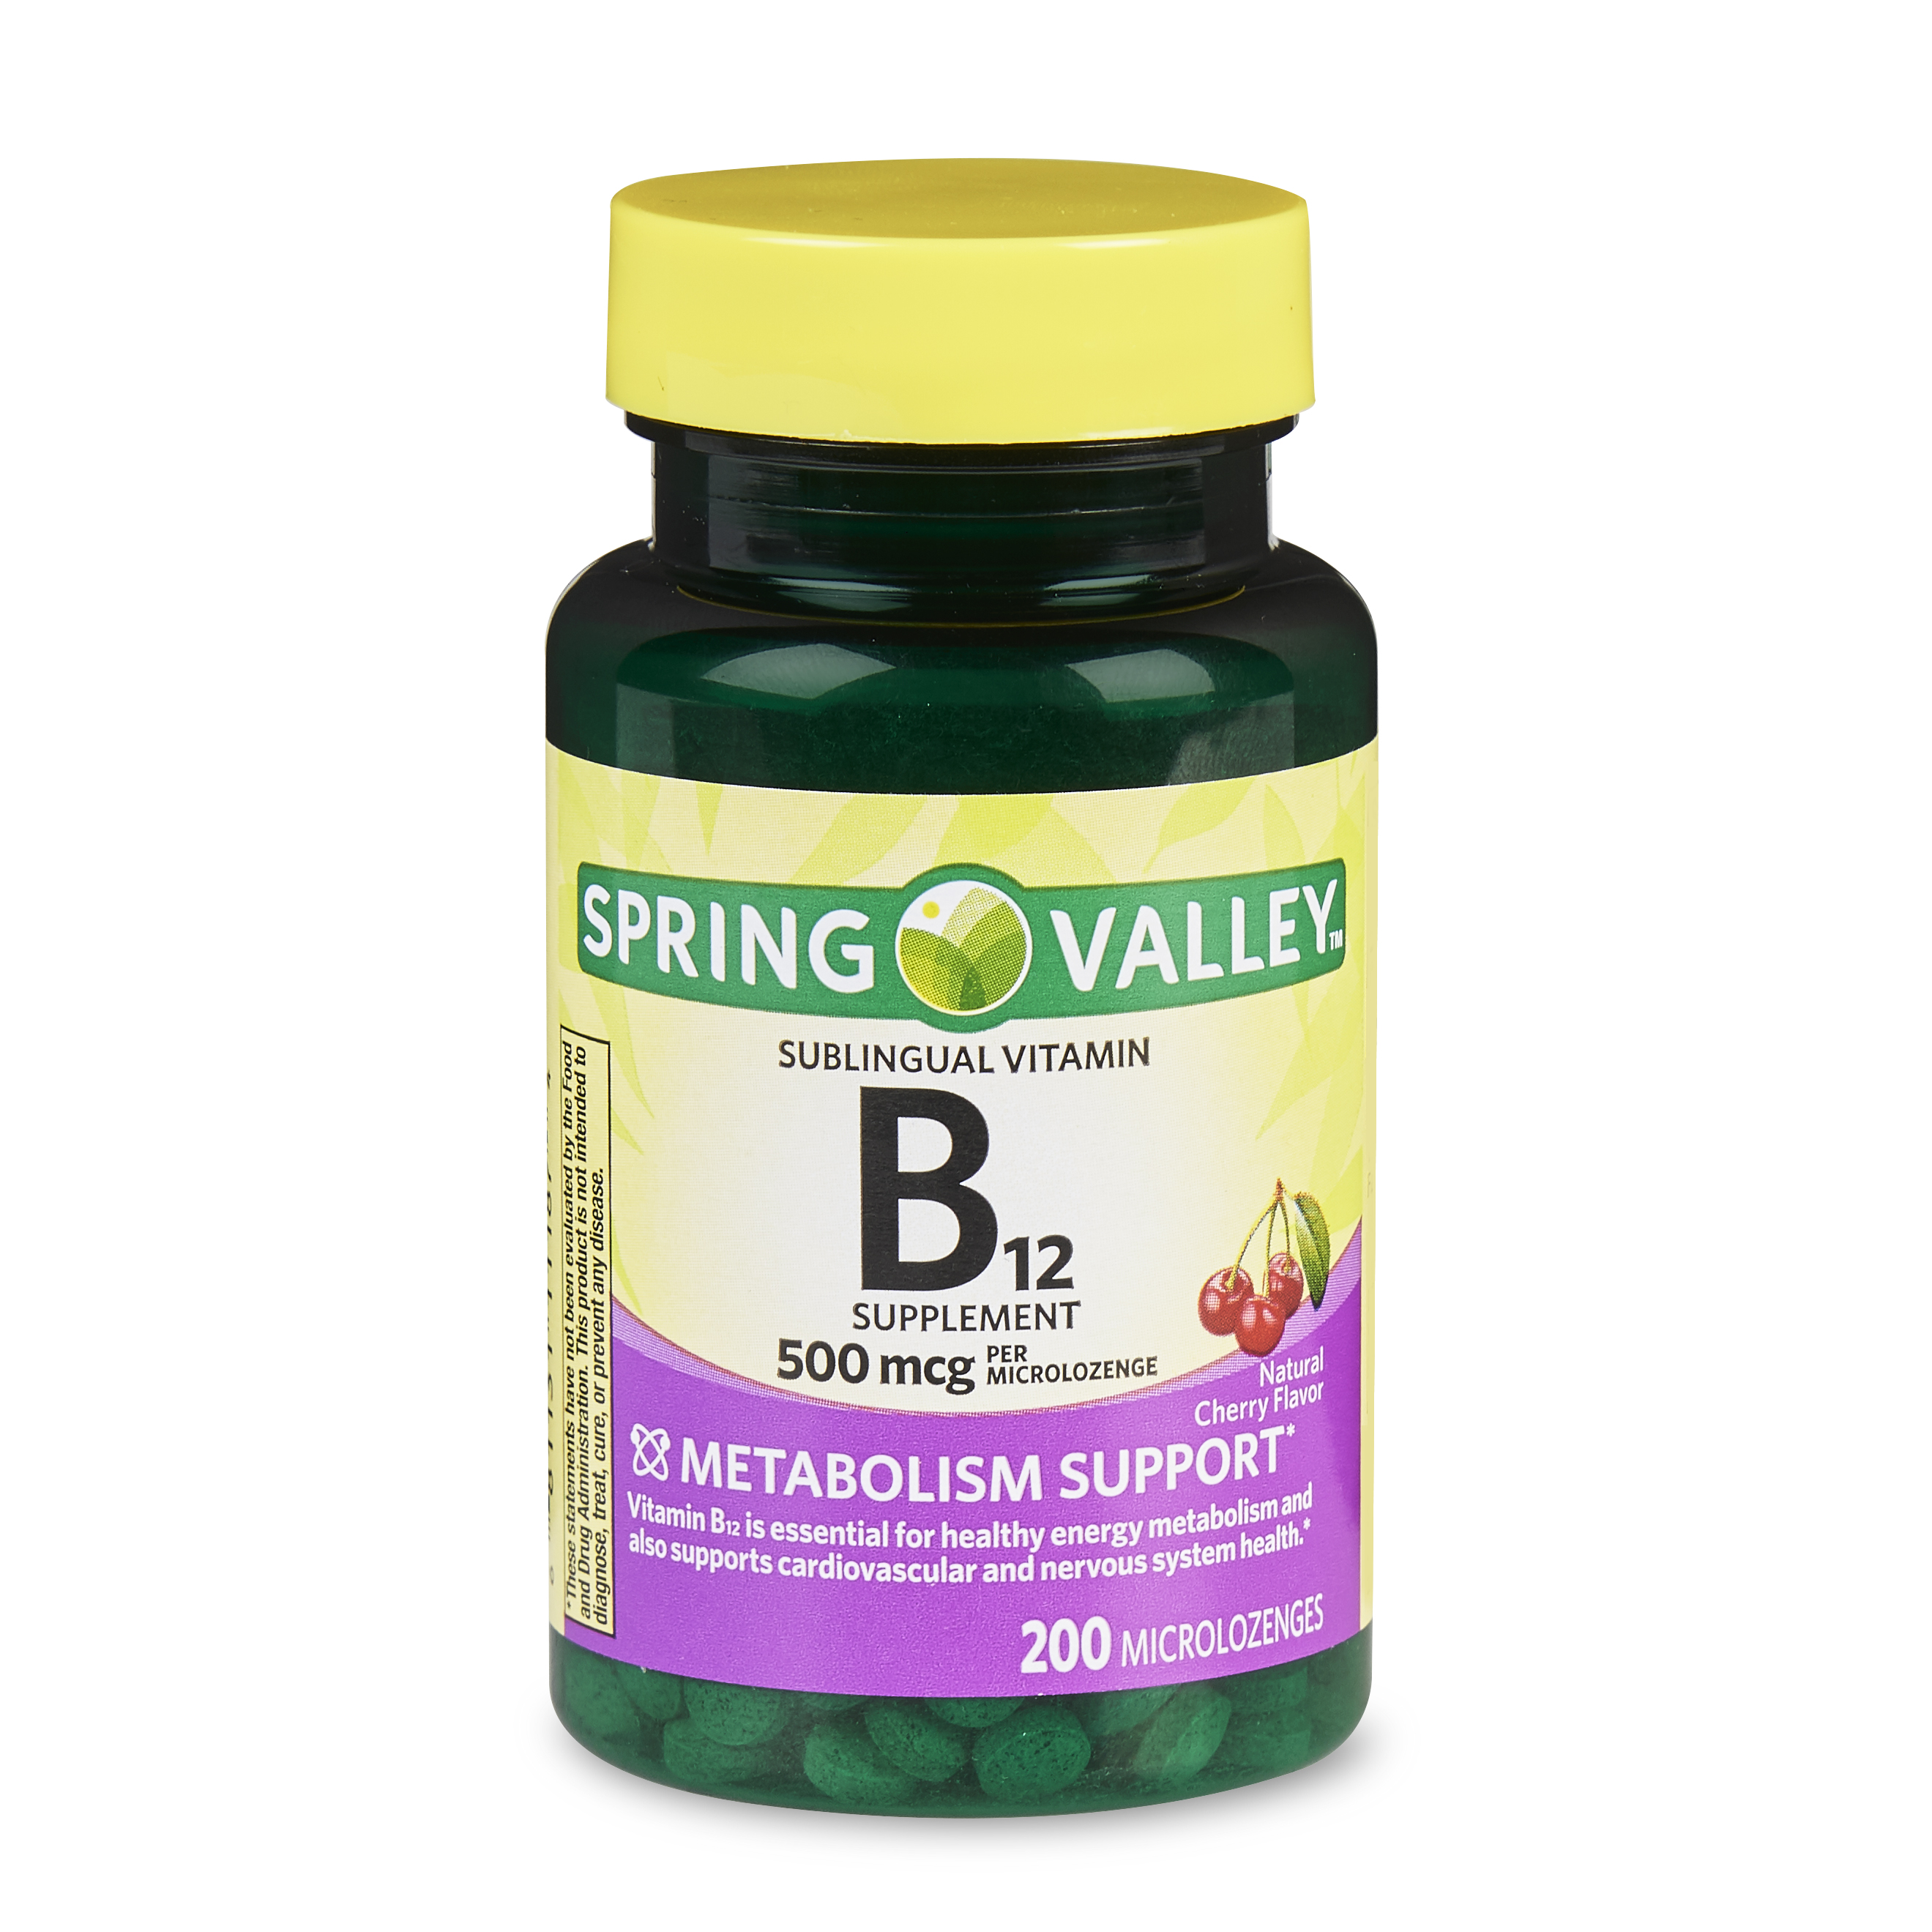 (2 Pack) Spring Valley Vitamin B12 Microlozenges, 500 mcg, 200 Ct